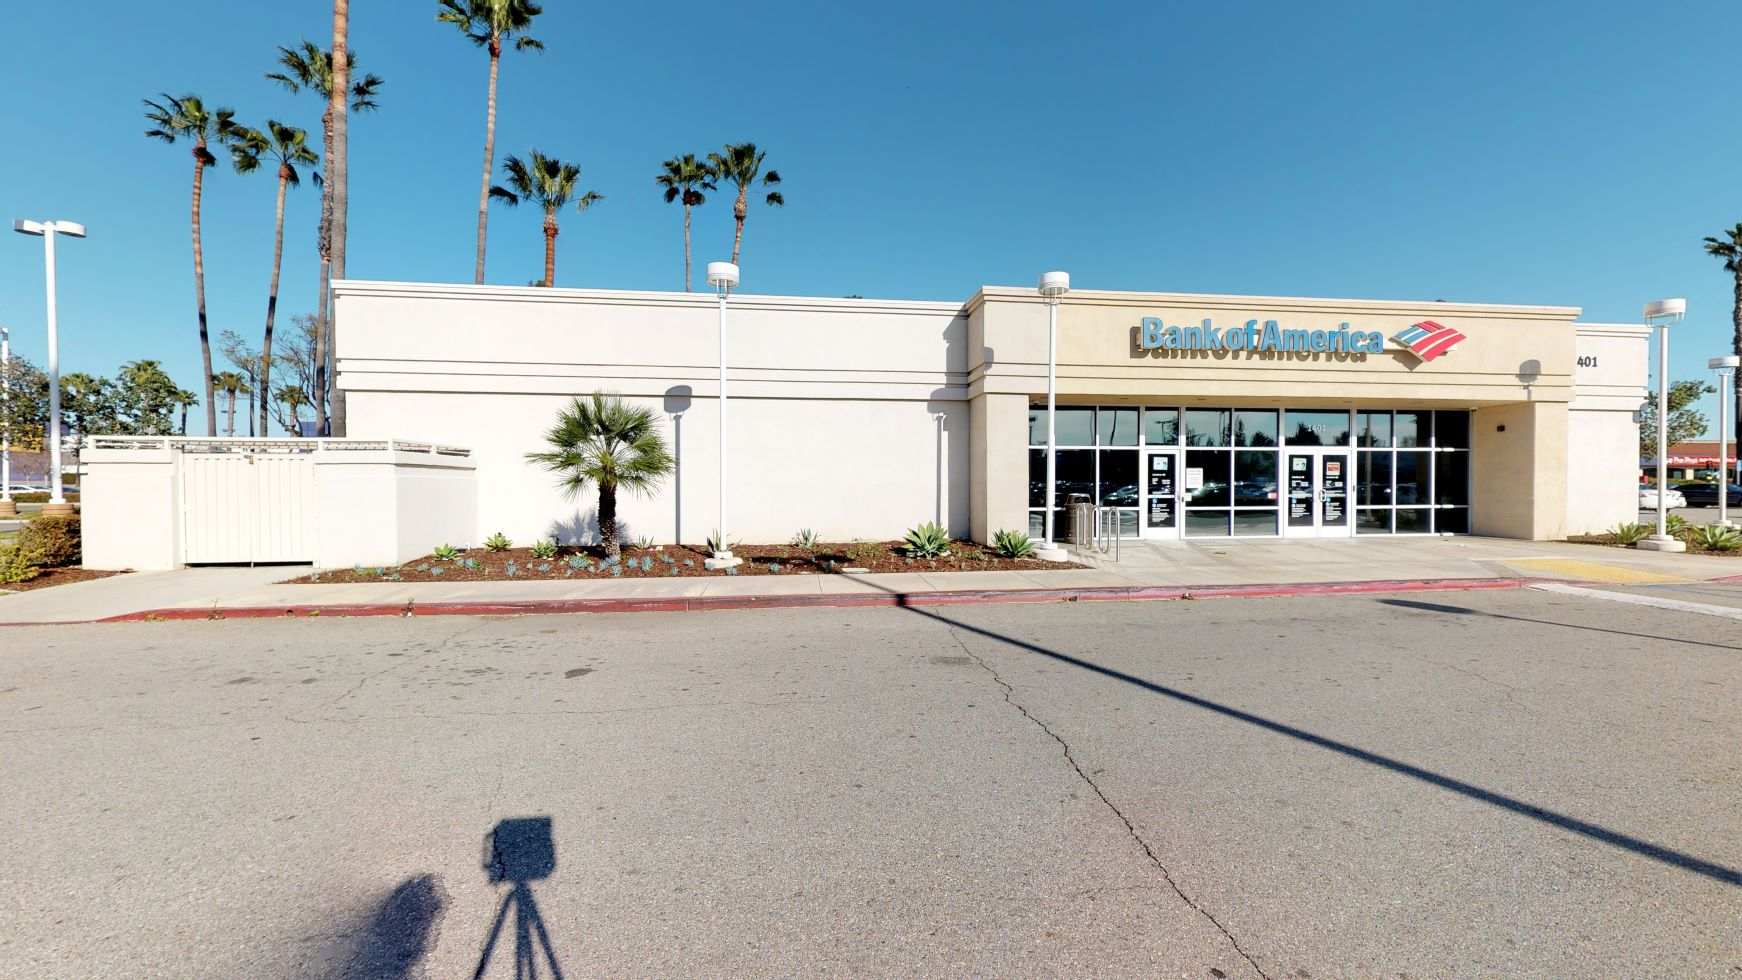 Bank of America financial center with walk-up ATM   1401 S Harbor Blvd, Fullerton, CA 92832